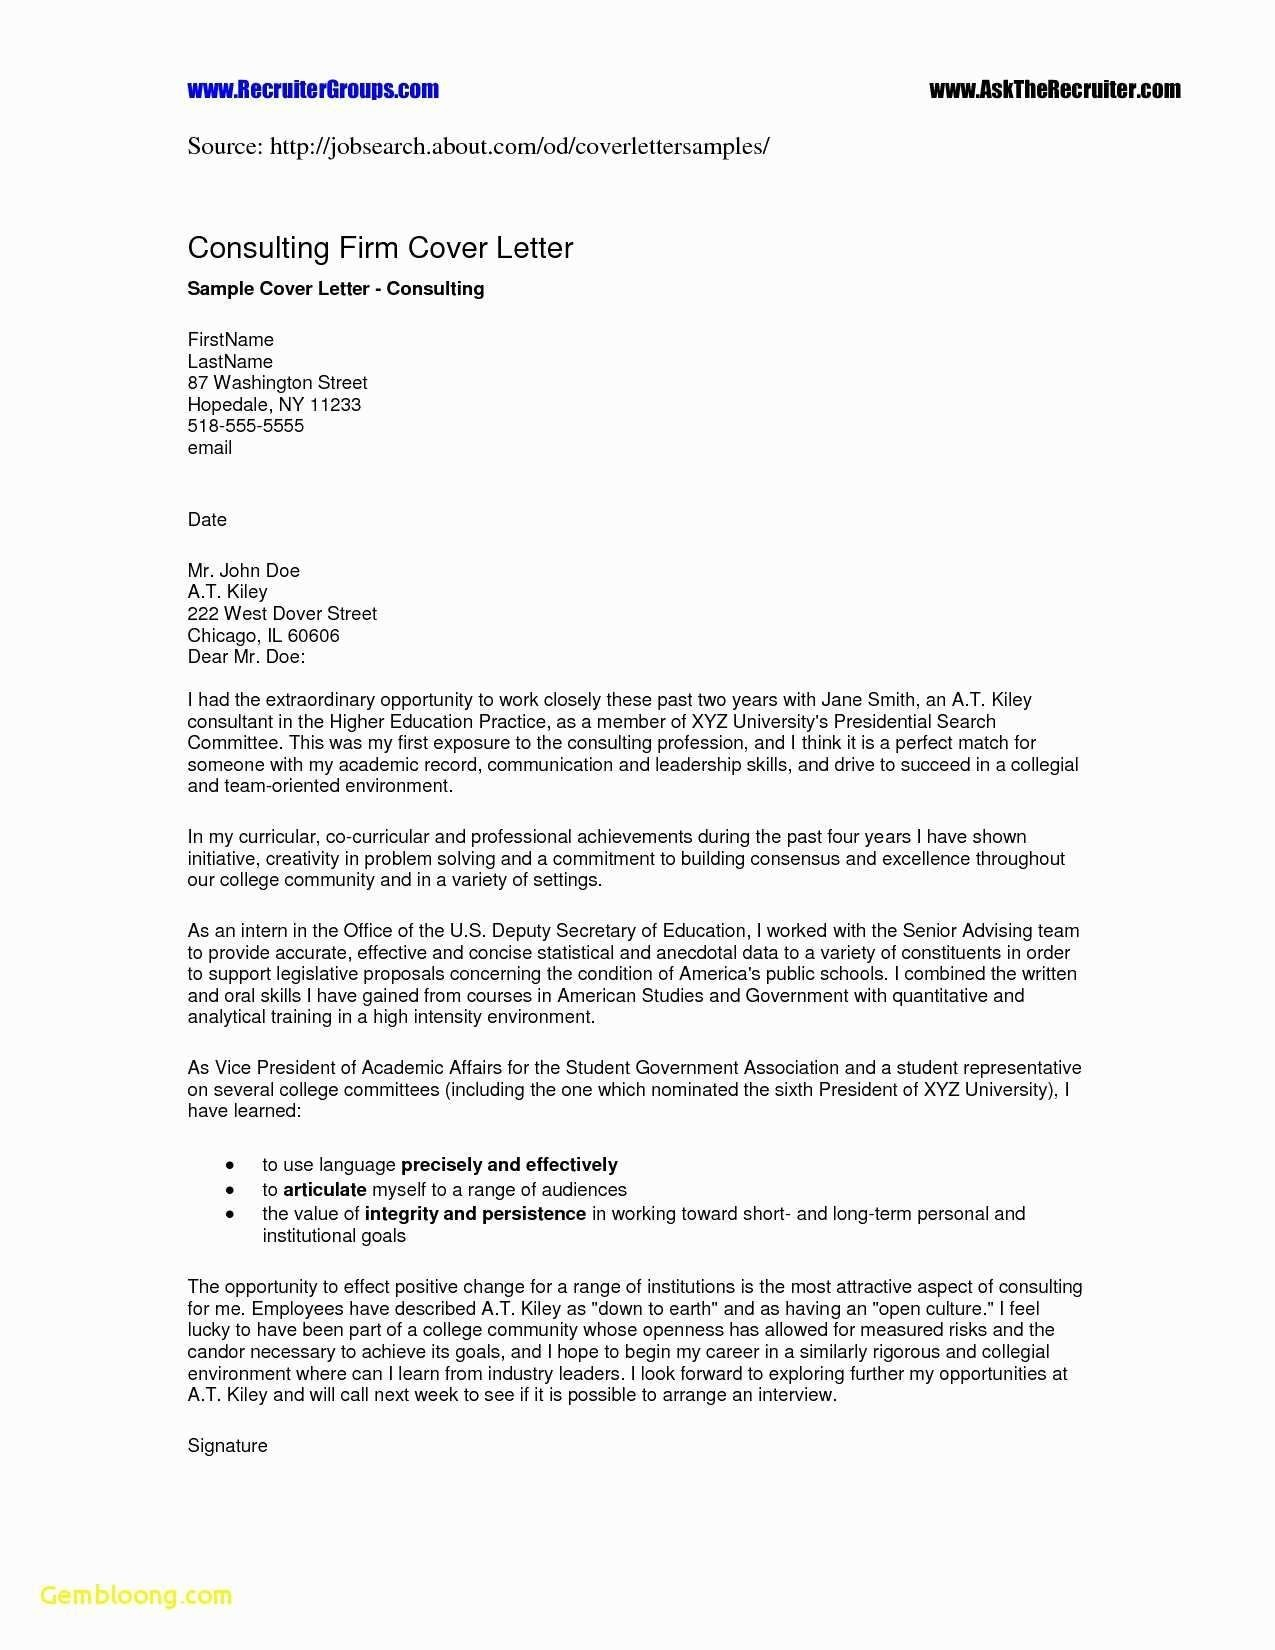 Cover Letter with Photo Template - Fill In Resume Awesome Fresh Cover Letter Fill In Awesome Job Letter